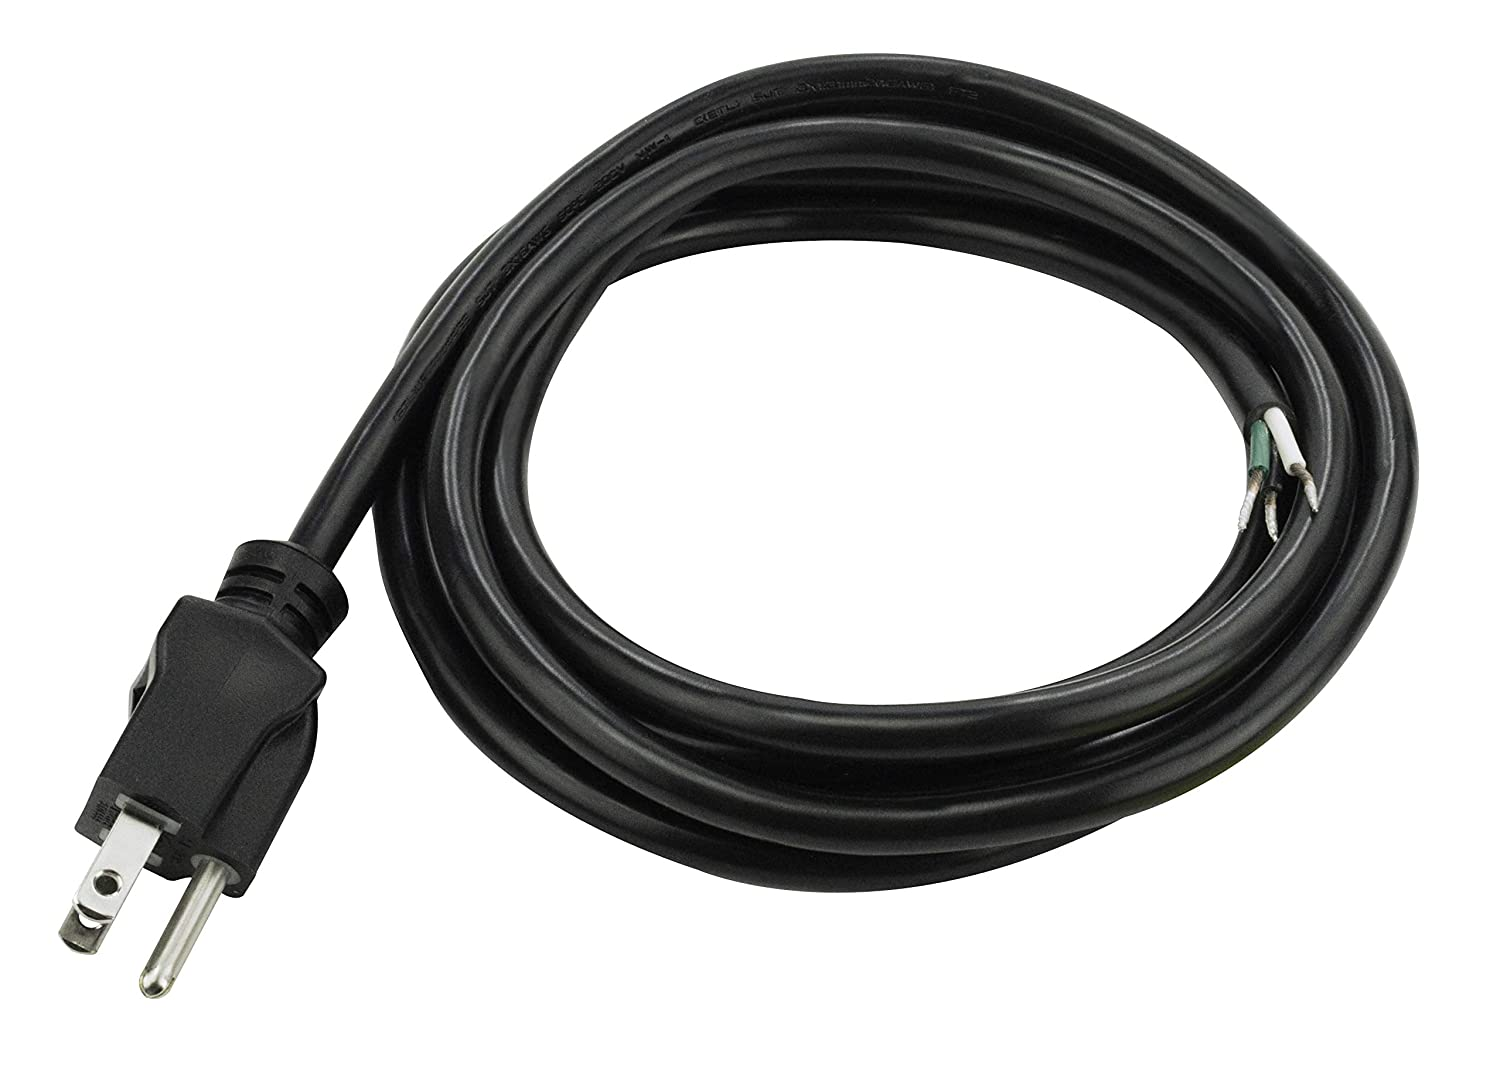 Prime PS010608 8-Feet 16/3 SJT Replacement Power Supply Cord, Black